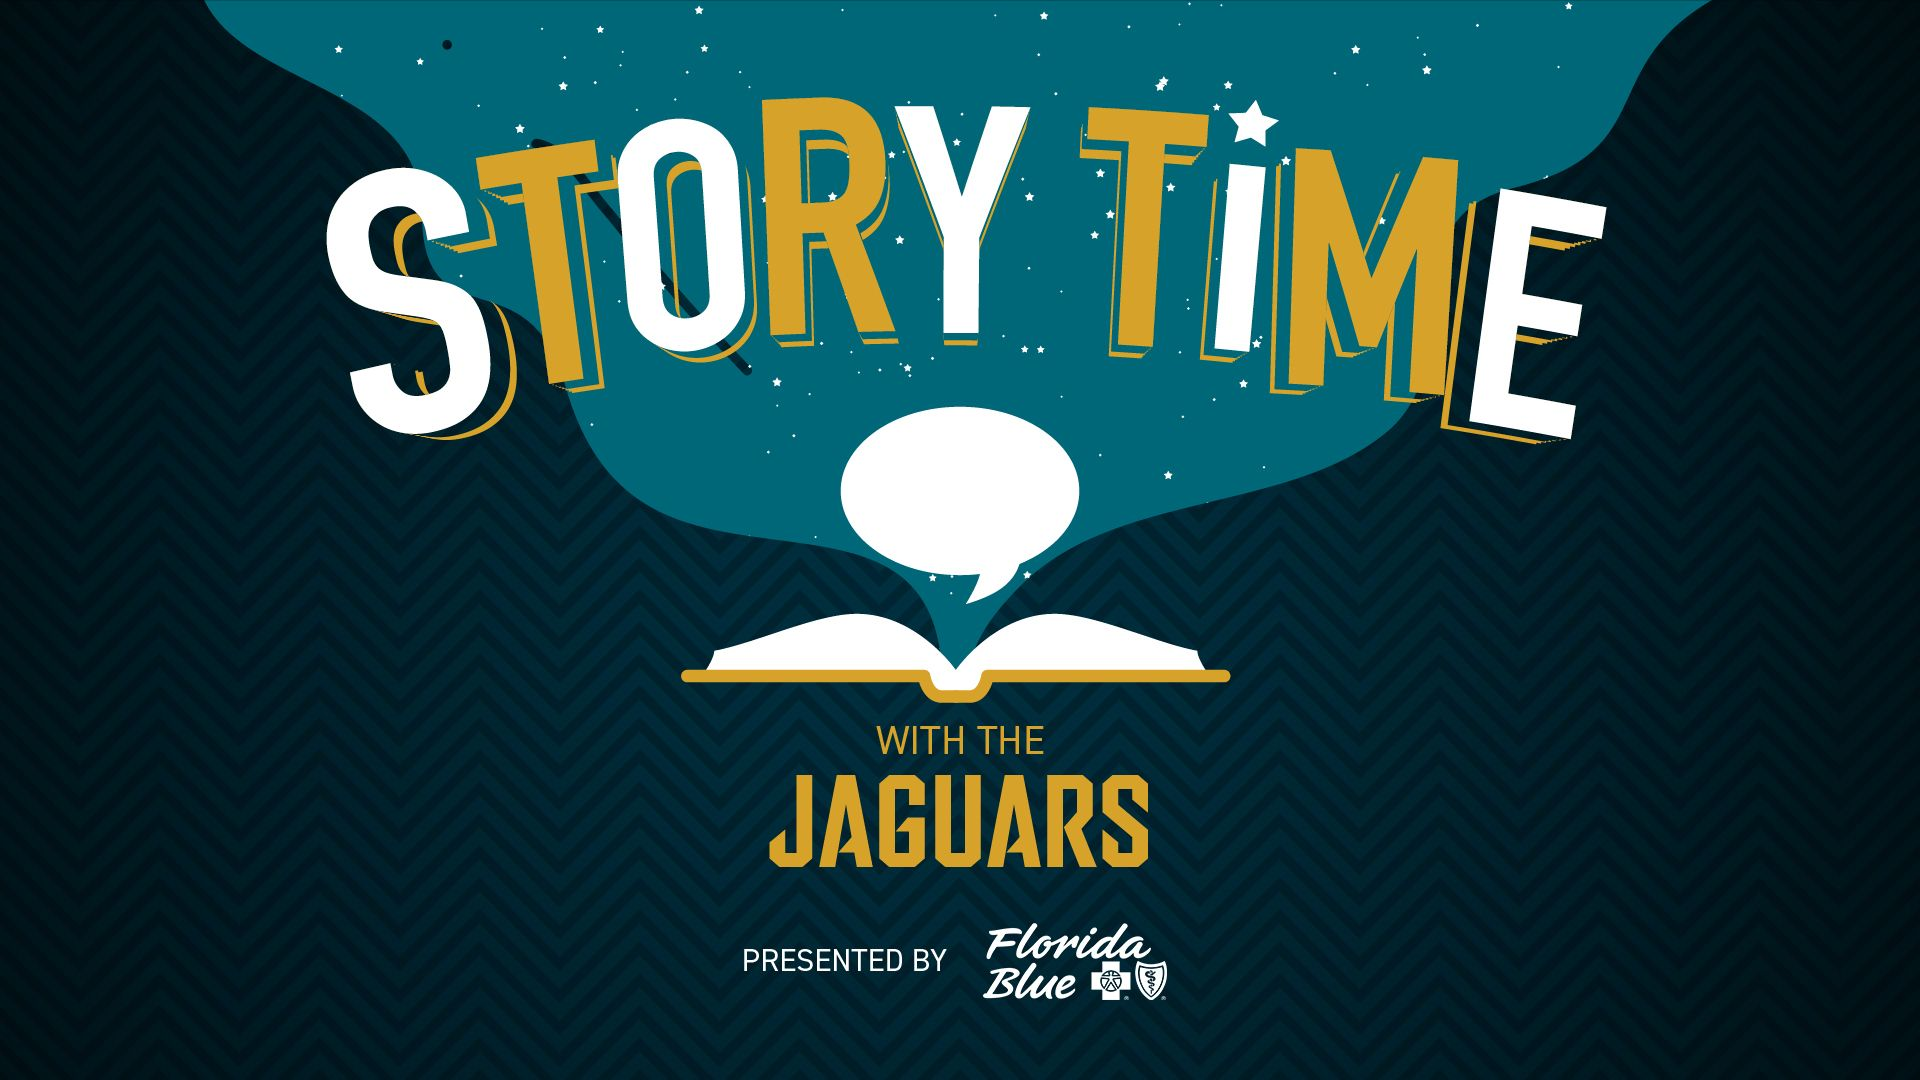 Story Time with the Jaguars